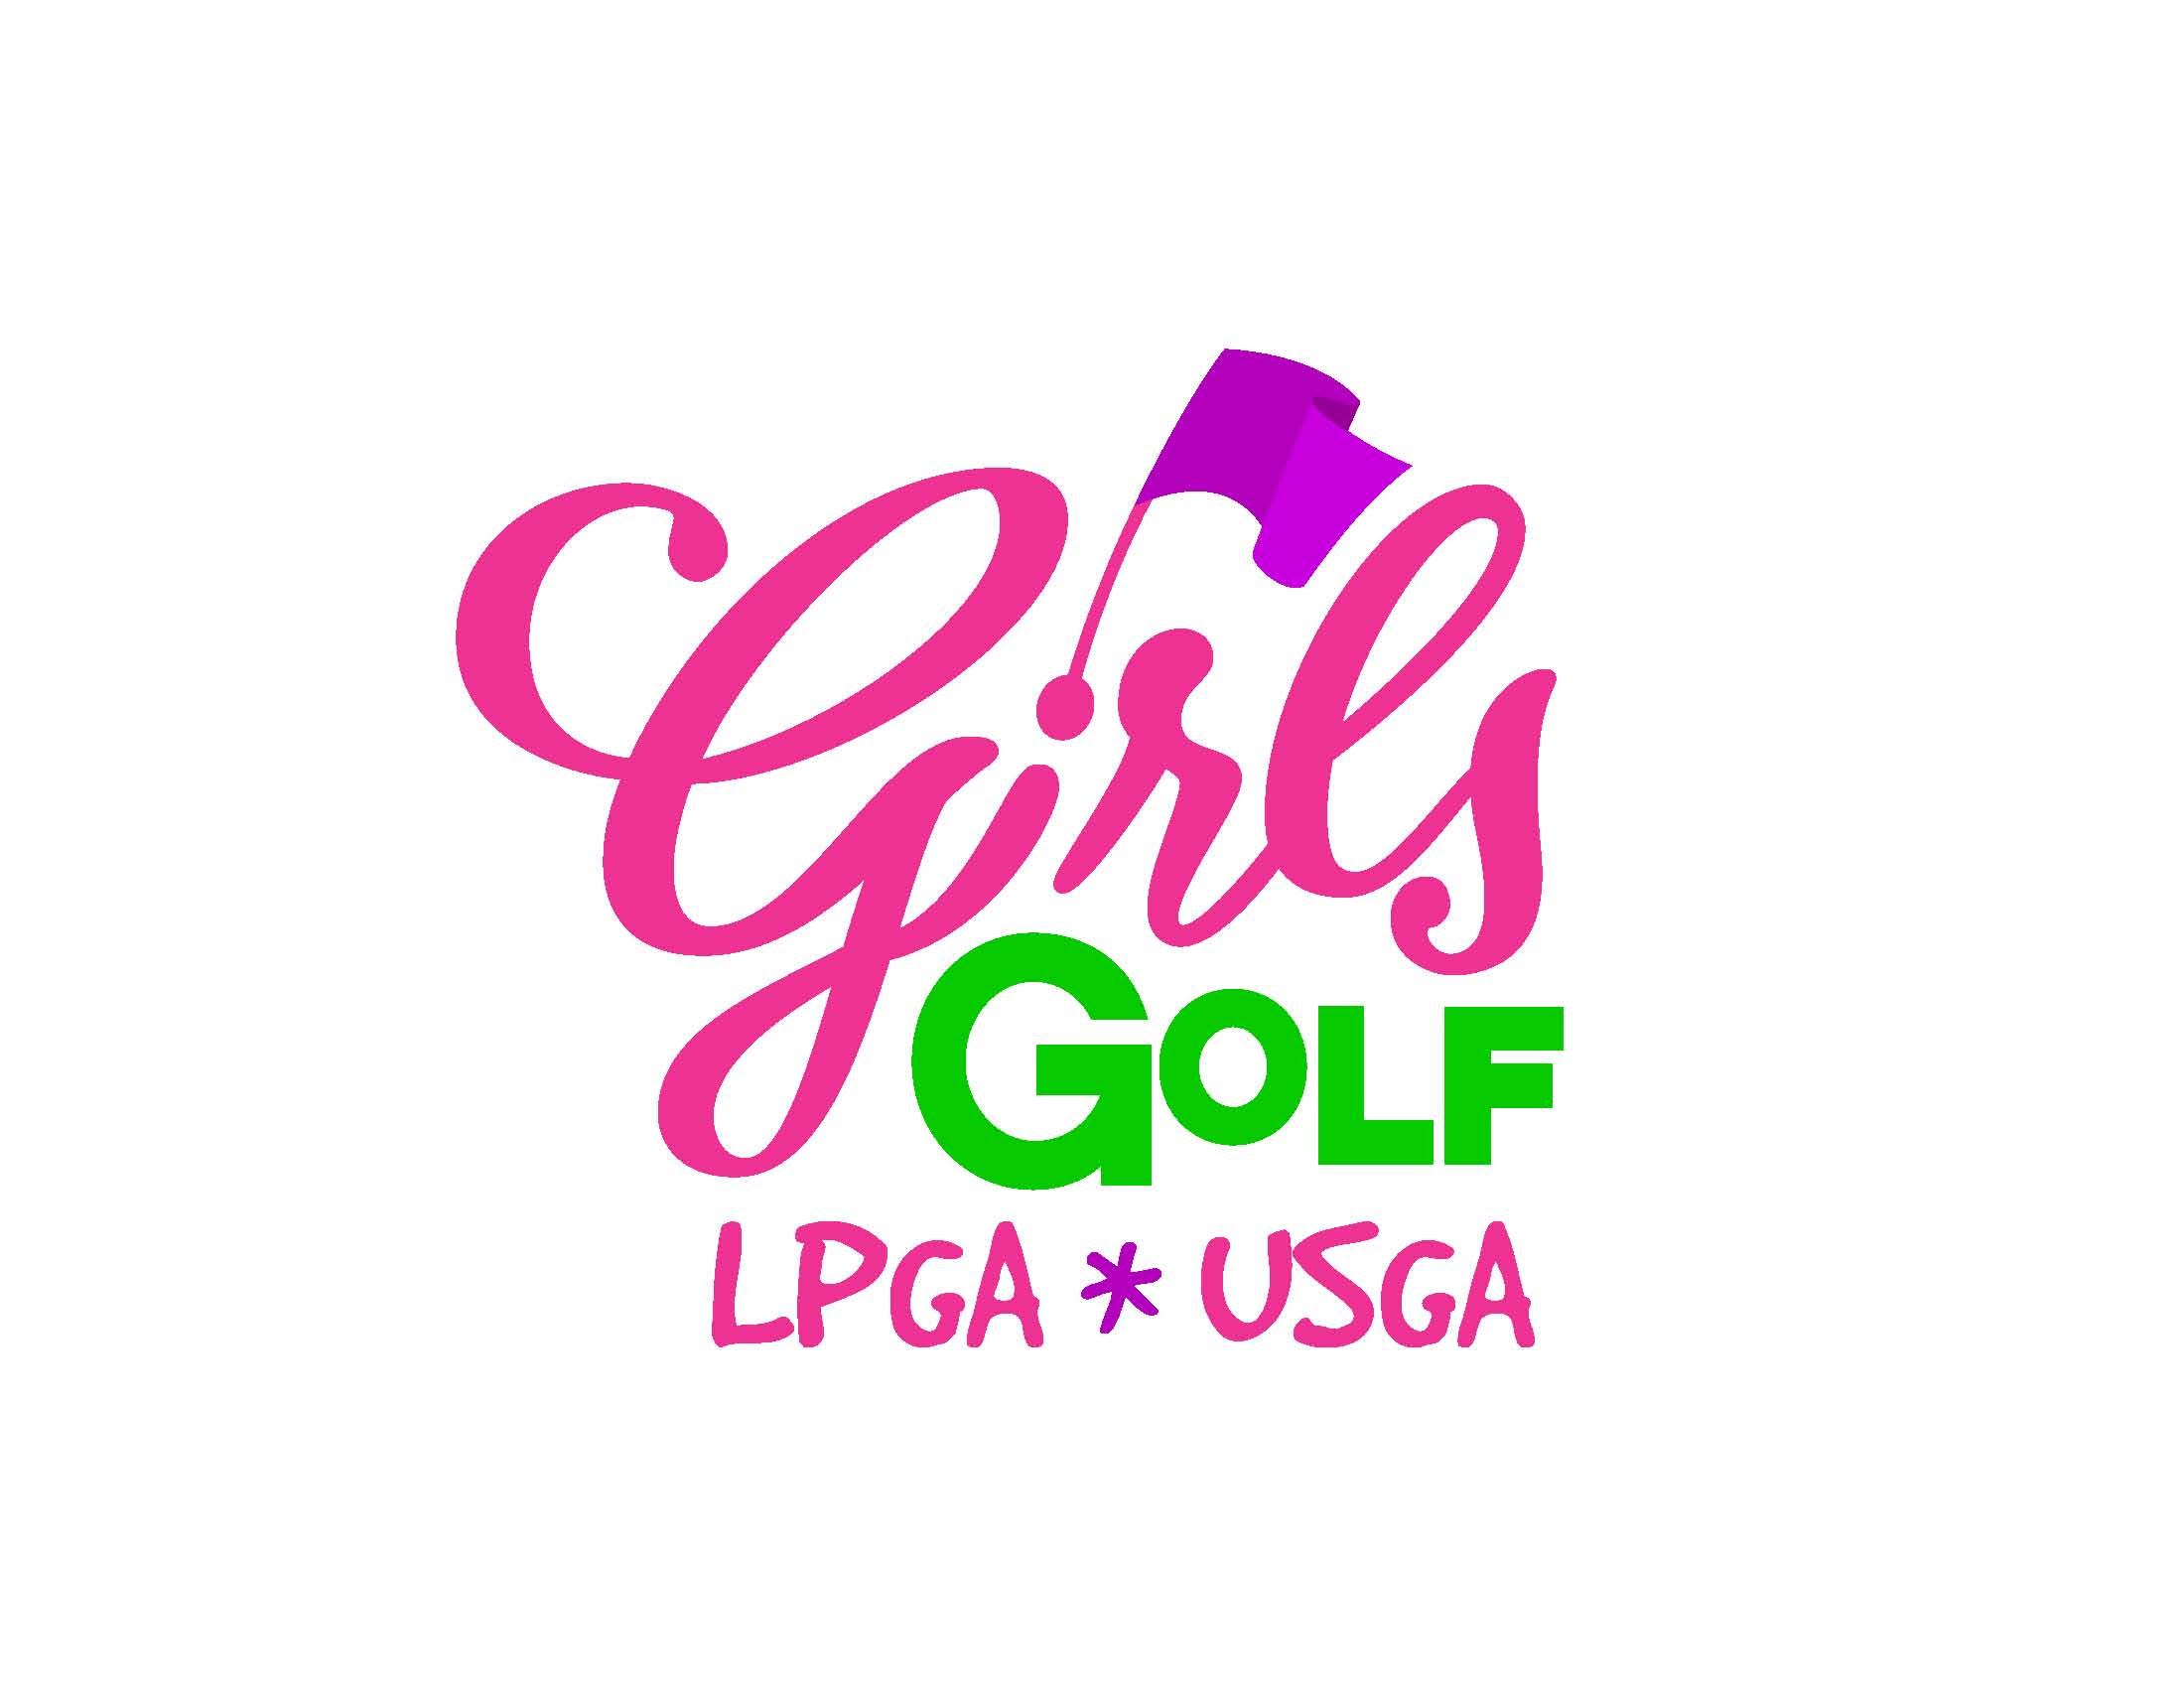 LPGA*USGA Girls Golf